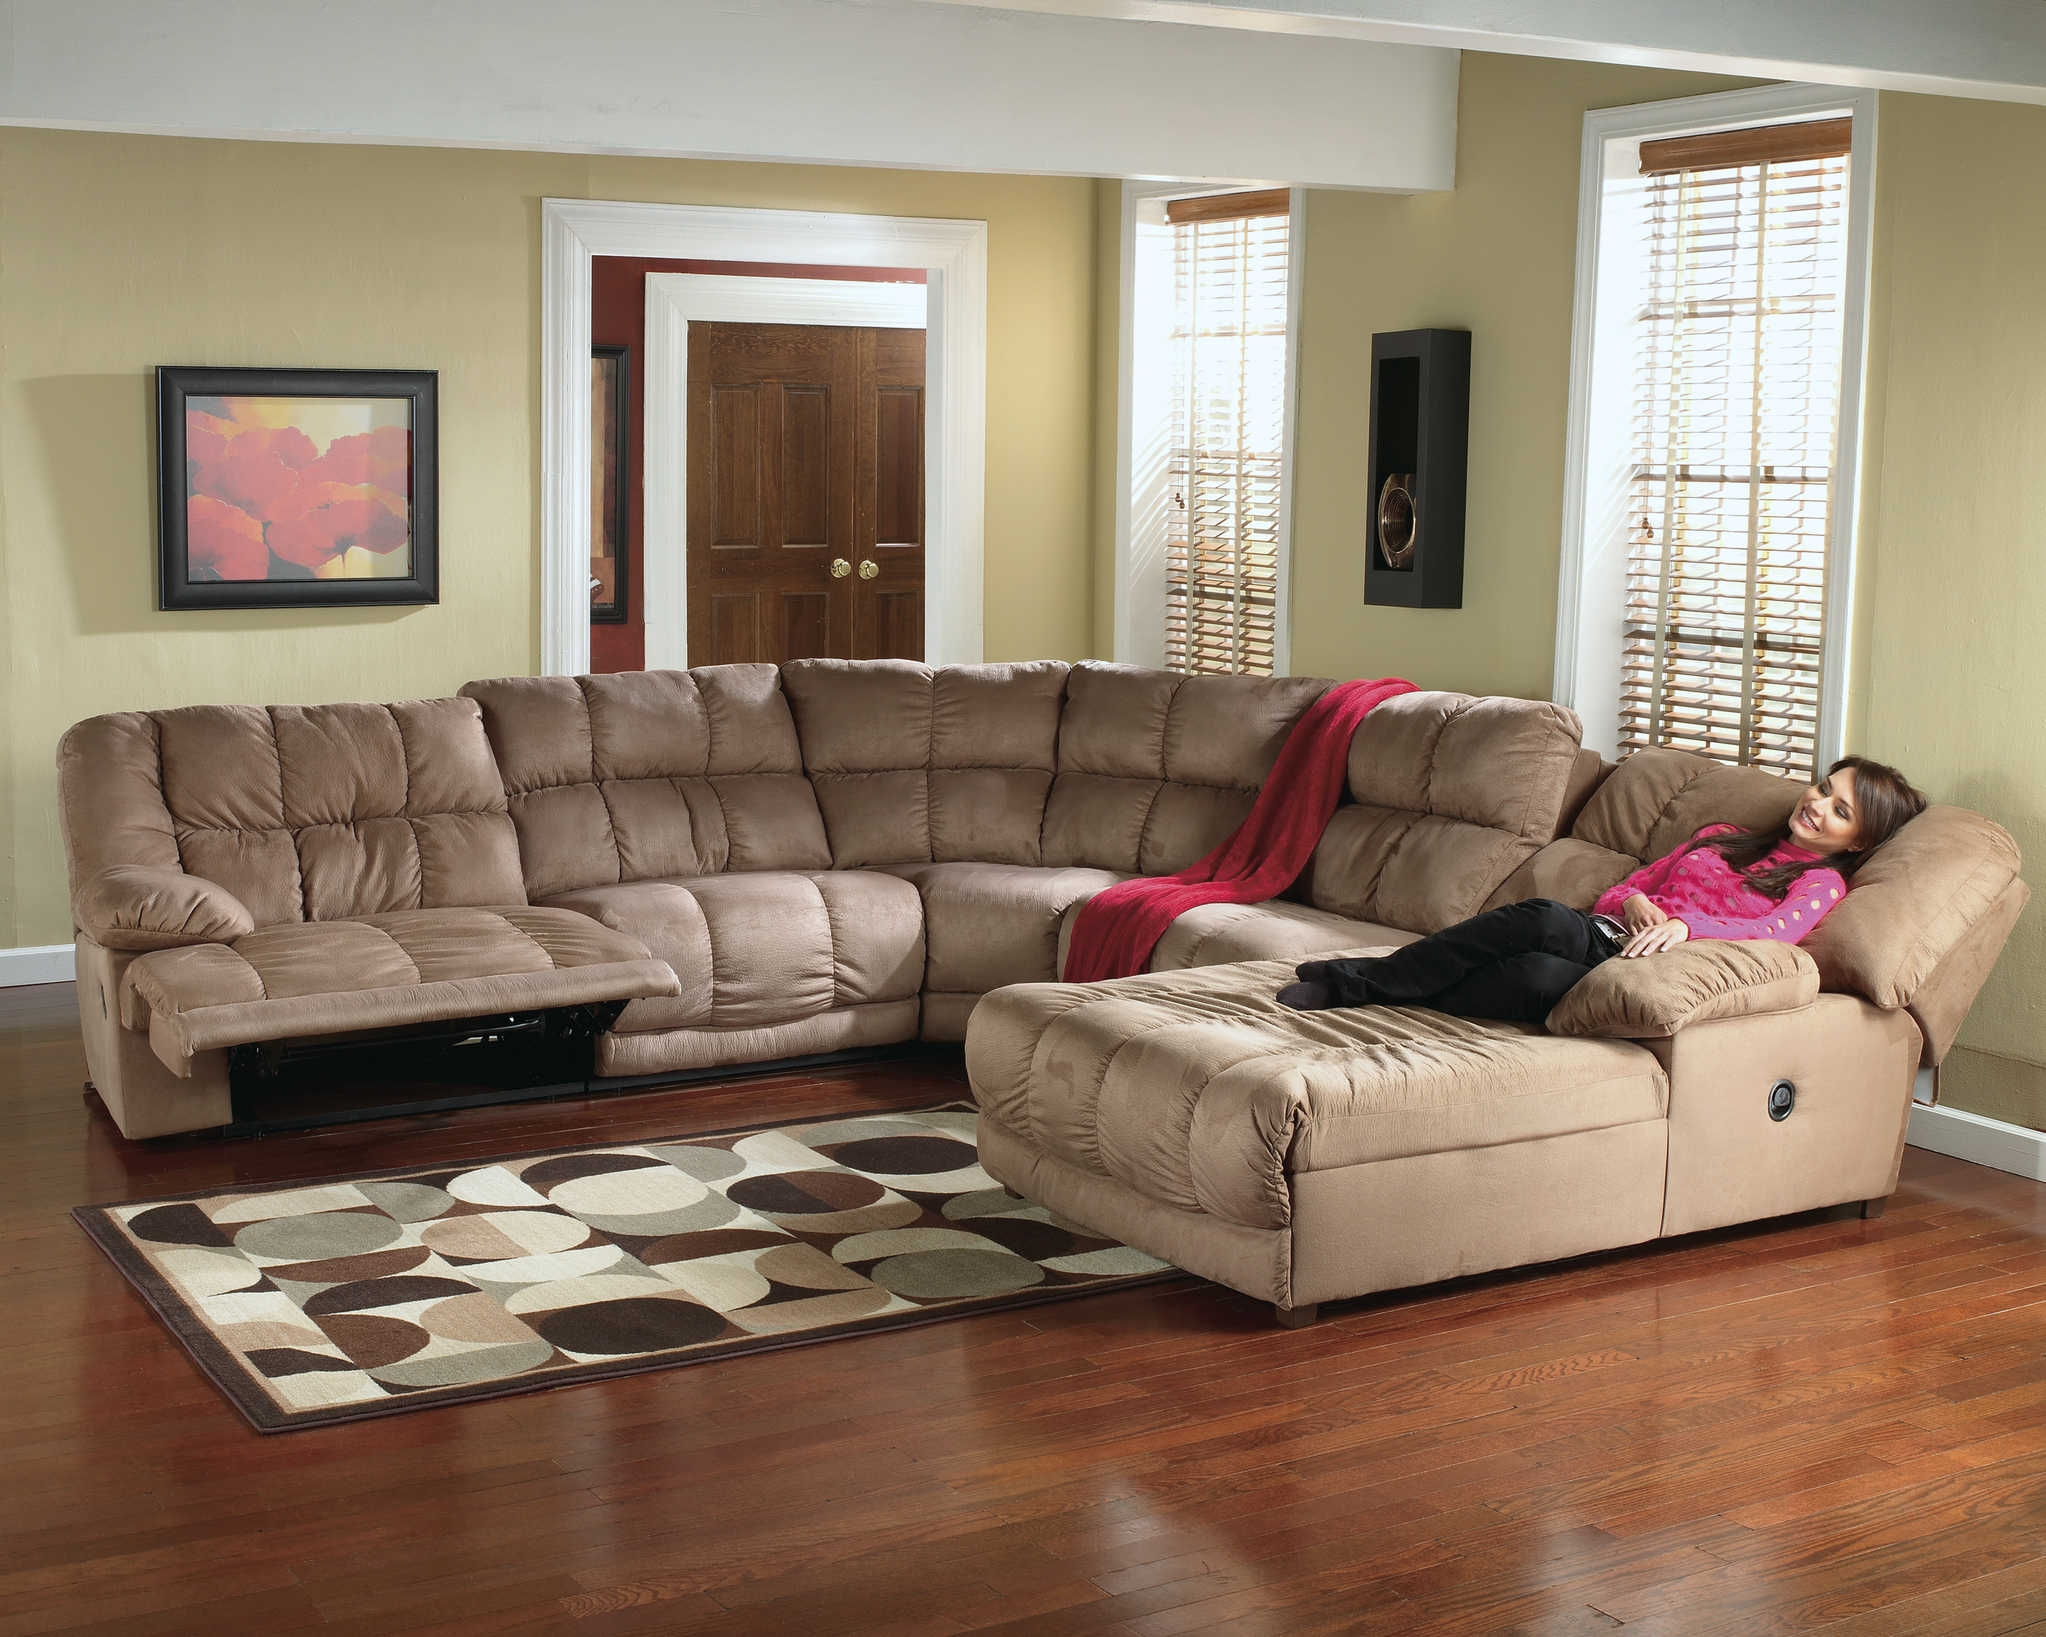 Furniture Extra Large Sofa Oversized Couch Deep Cushion Couch Pertaining To Deep Cushion Sofa (Image 12 of 15)